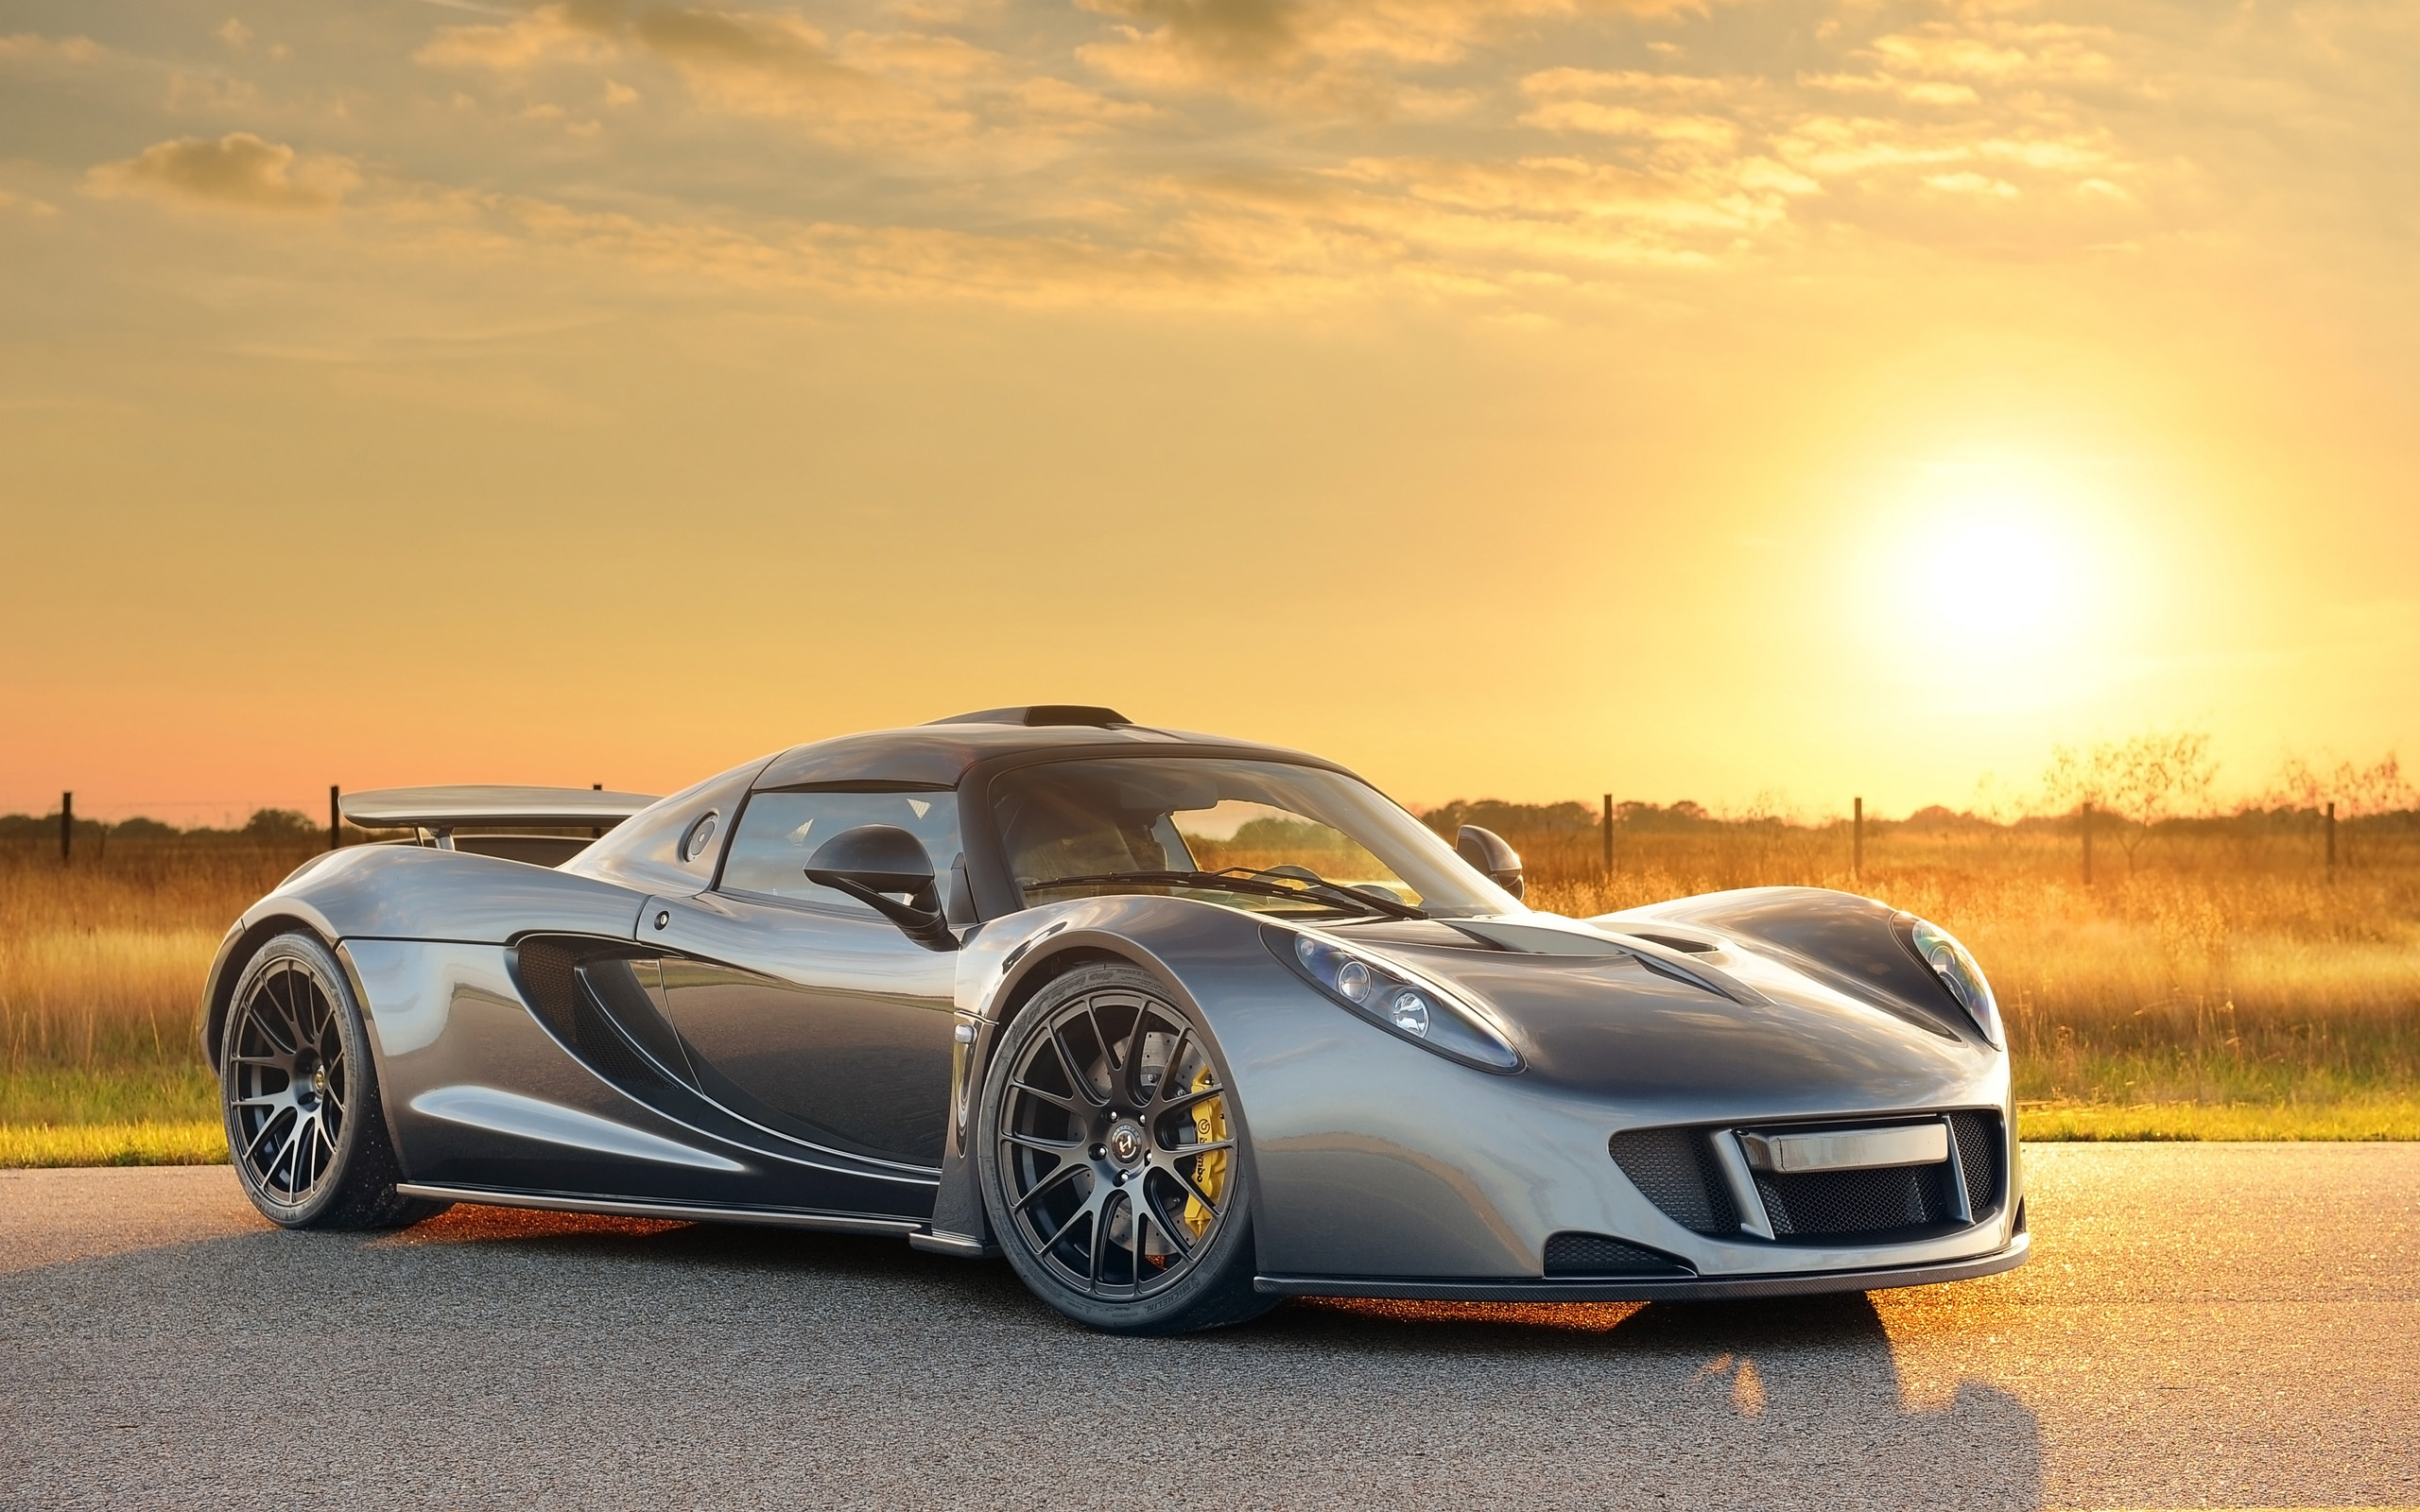 Kian's top video of the week: World's Fastest – 270.49 mph Hennessey Venom GT